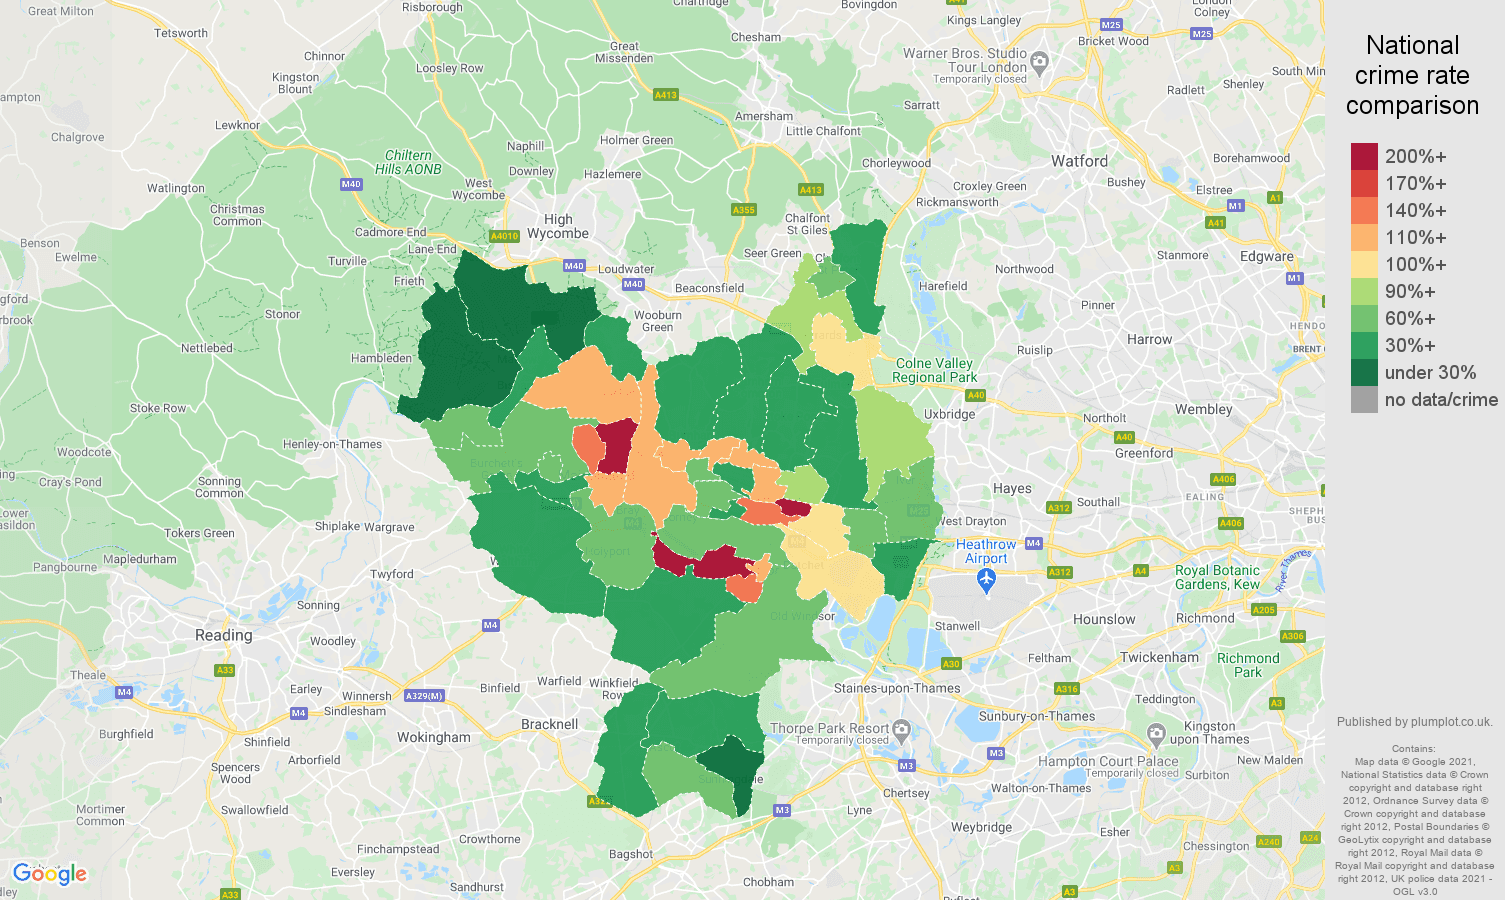 Slough drugs crime rate comparison map